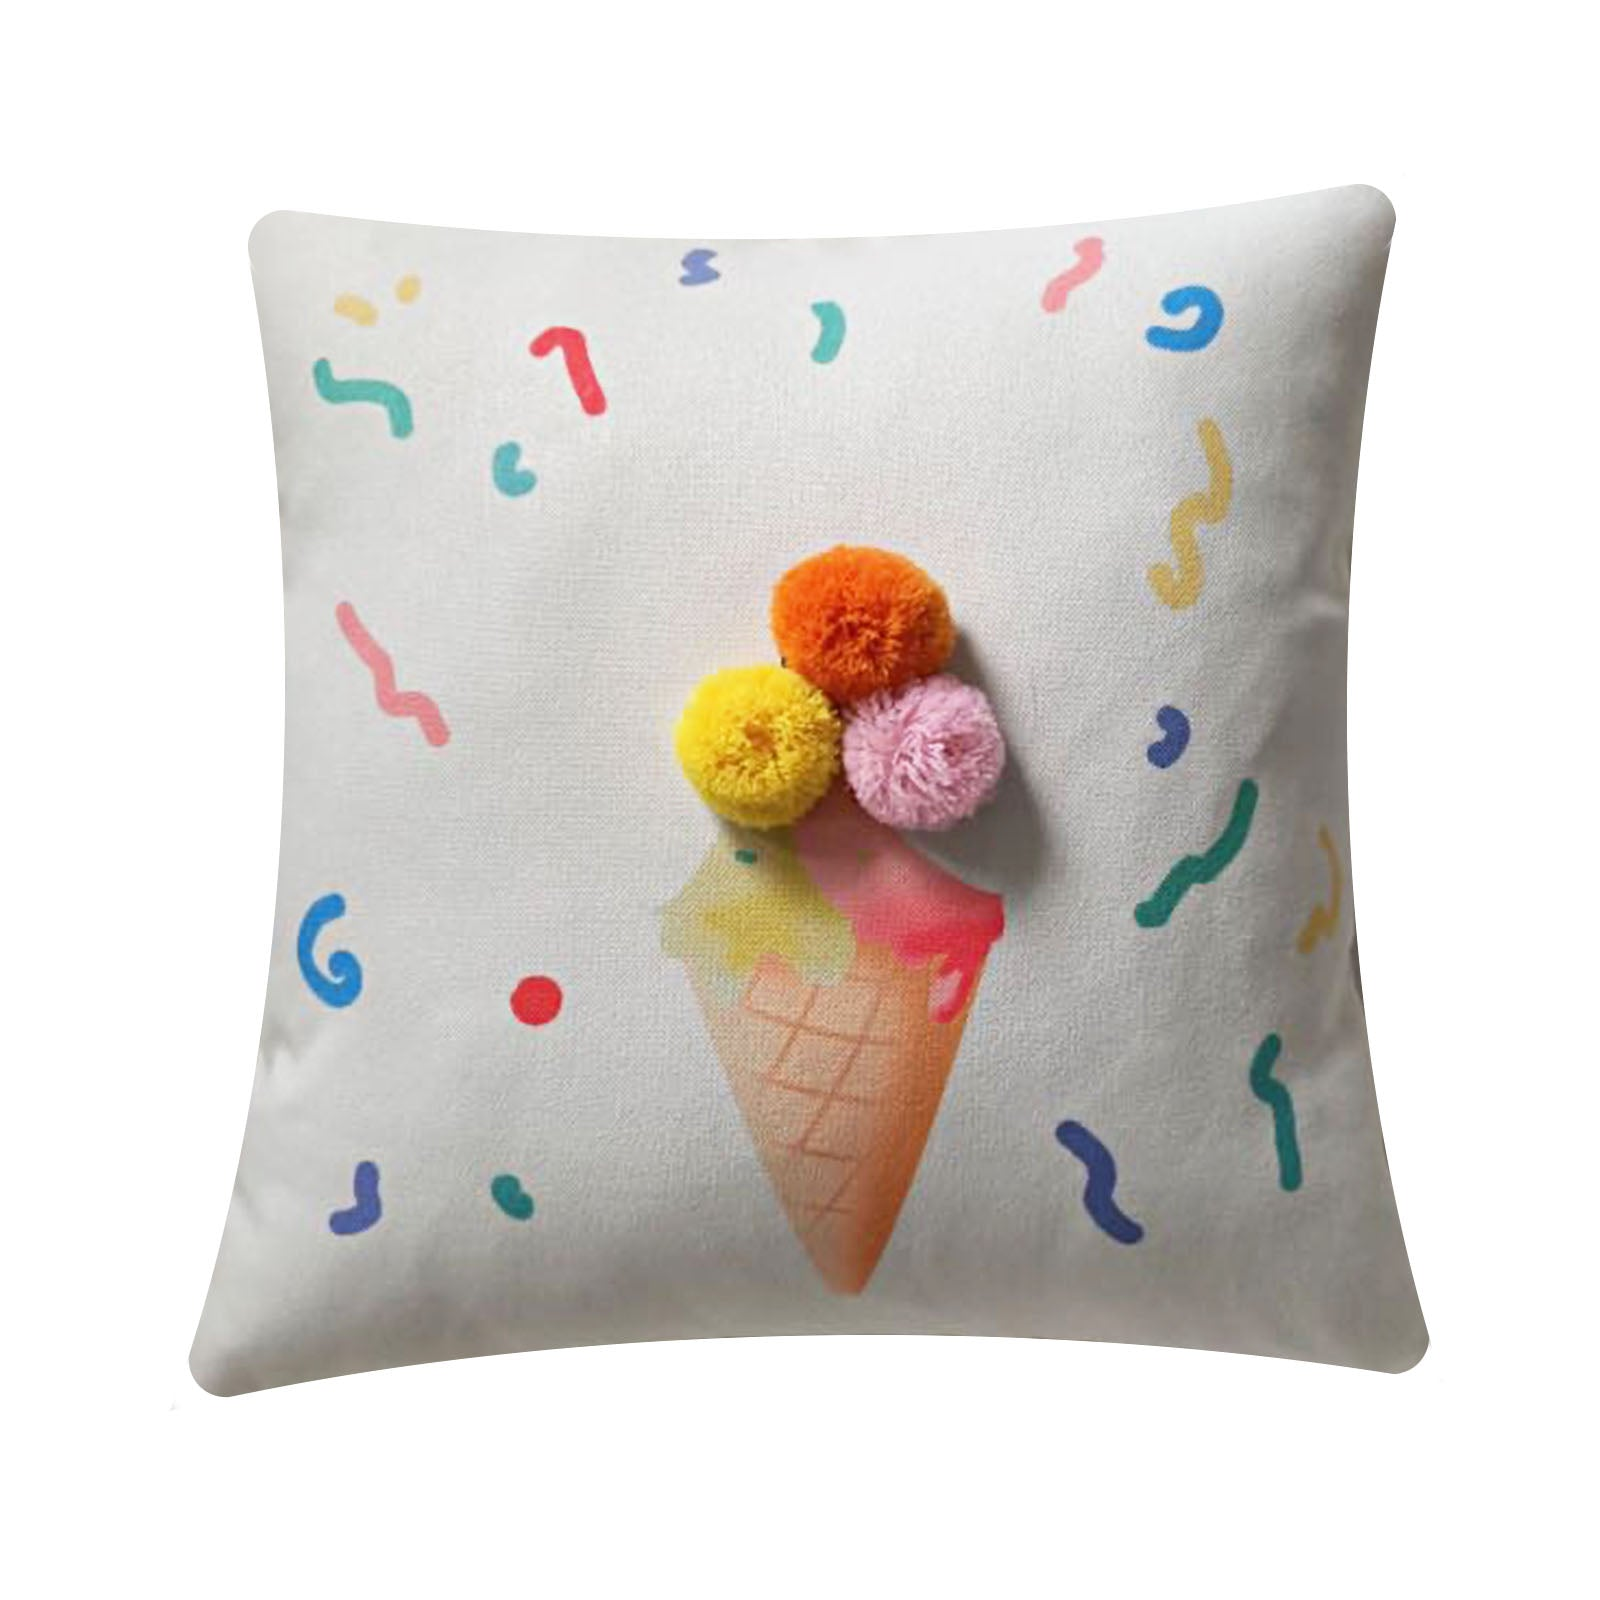 Cushion Cover 2102D-45-013-1